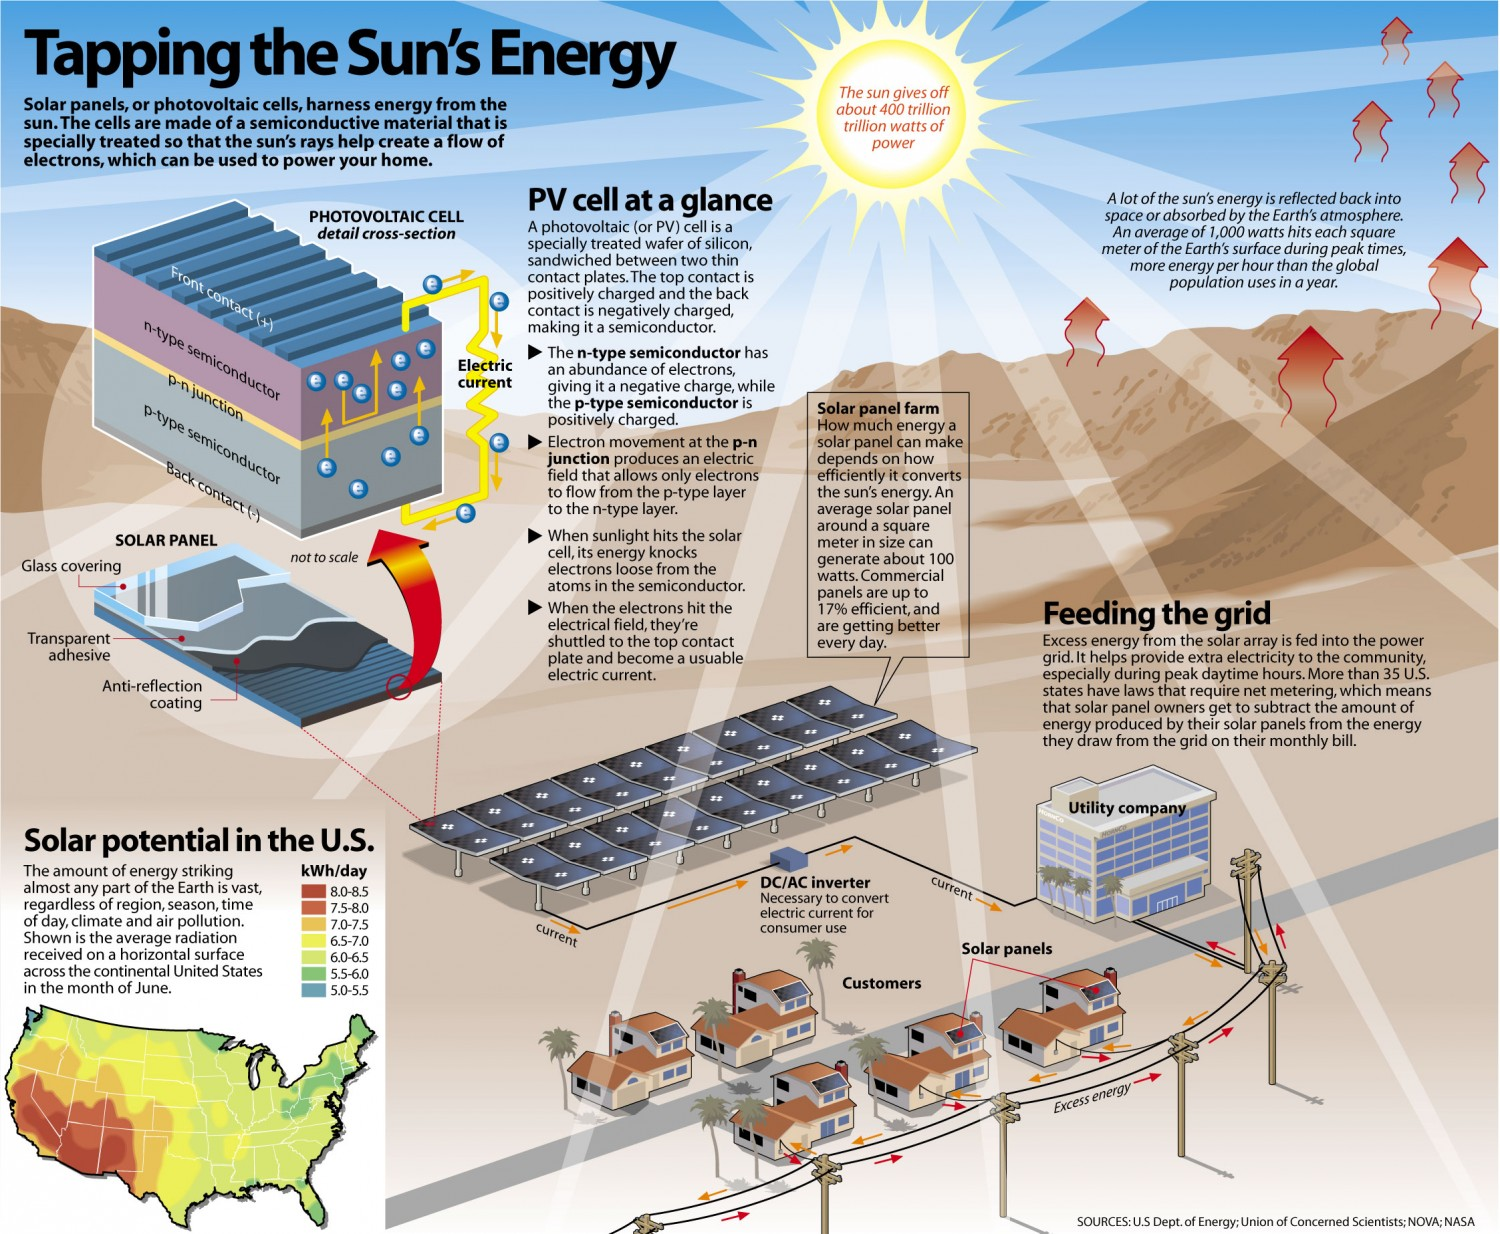 Tapping the Sun's Energy